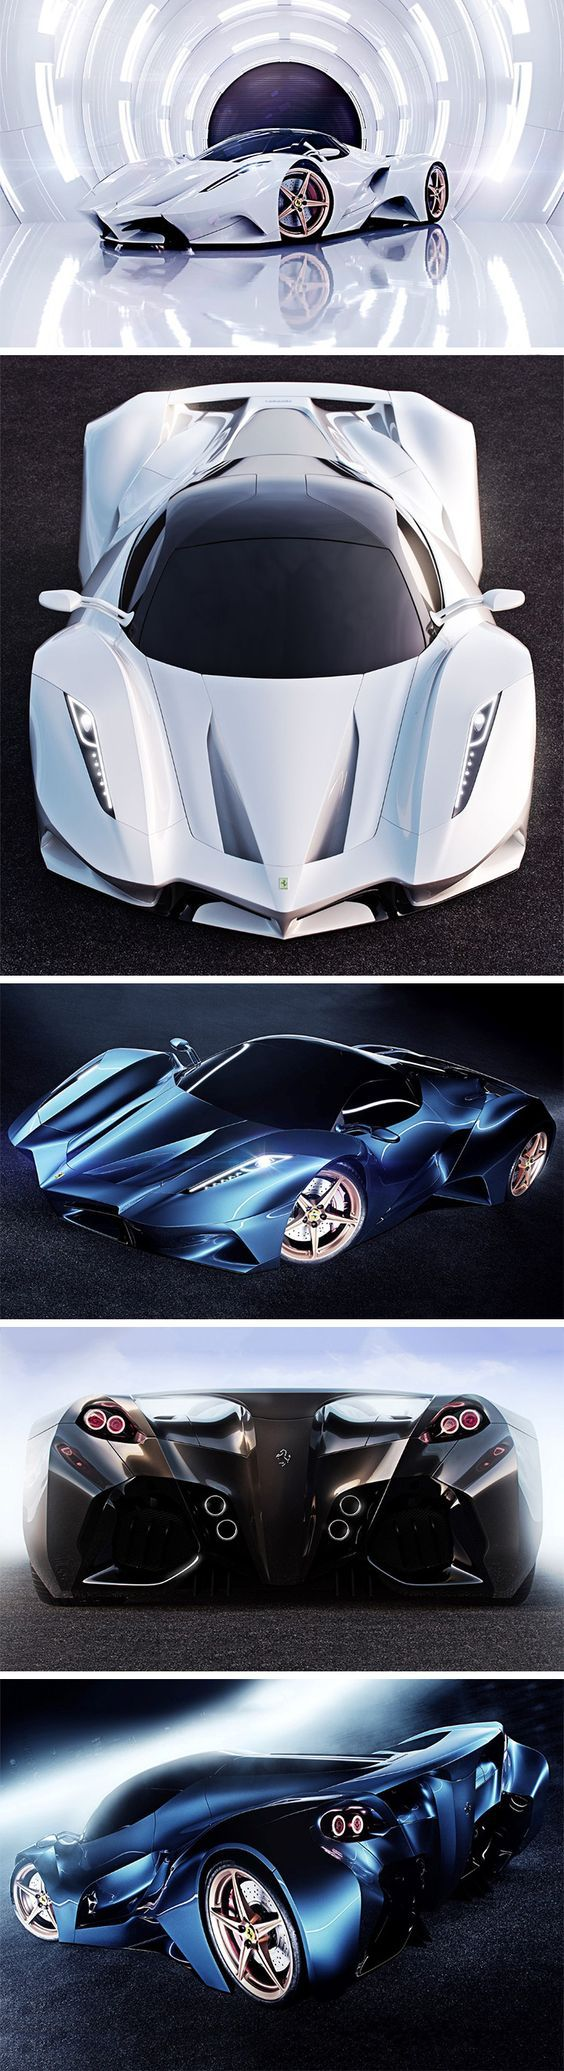 The only thing Ferrari about this concept car is the logo on the front and back! Designer Ivan Venkov decided to reimagine Ferrari as a completely new company, fully putting Ferrari's and Pininfarina's 60 year design language aside to develop something more aggressive and edgy.